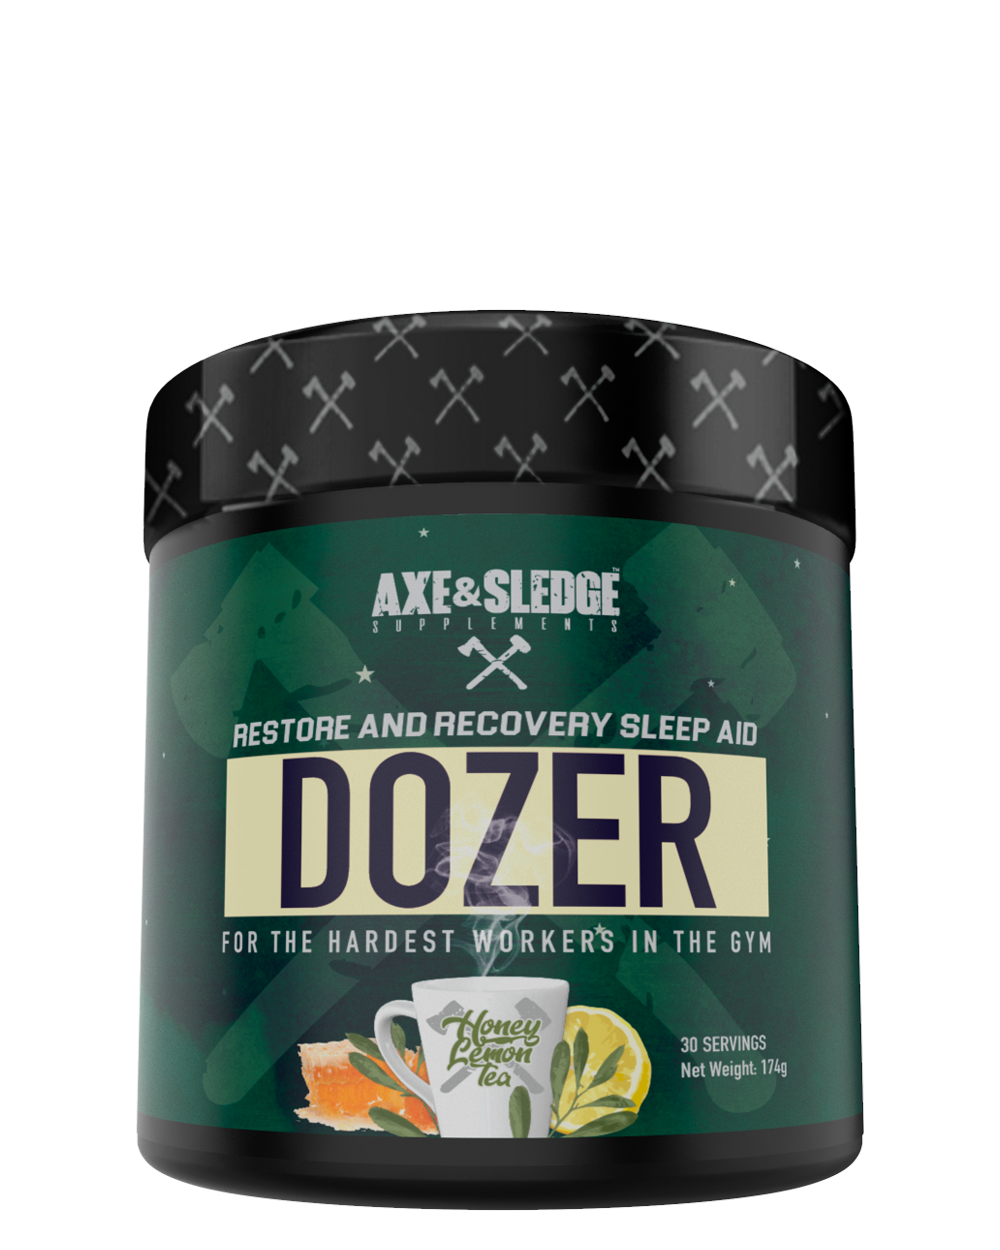 Dozer // Restore and Recover Sleep Aid